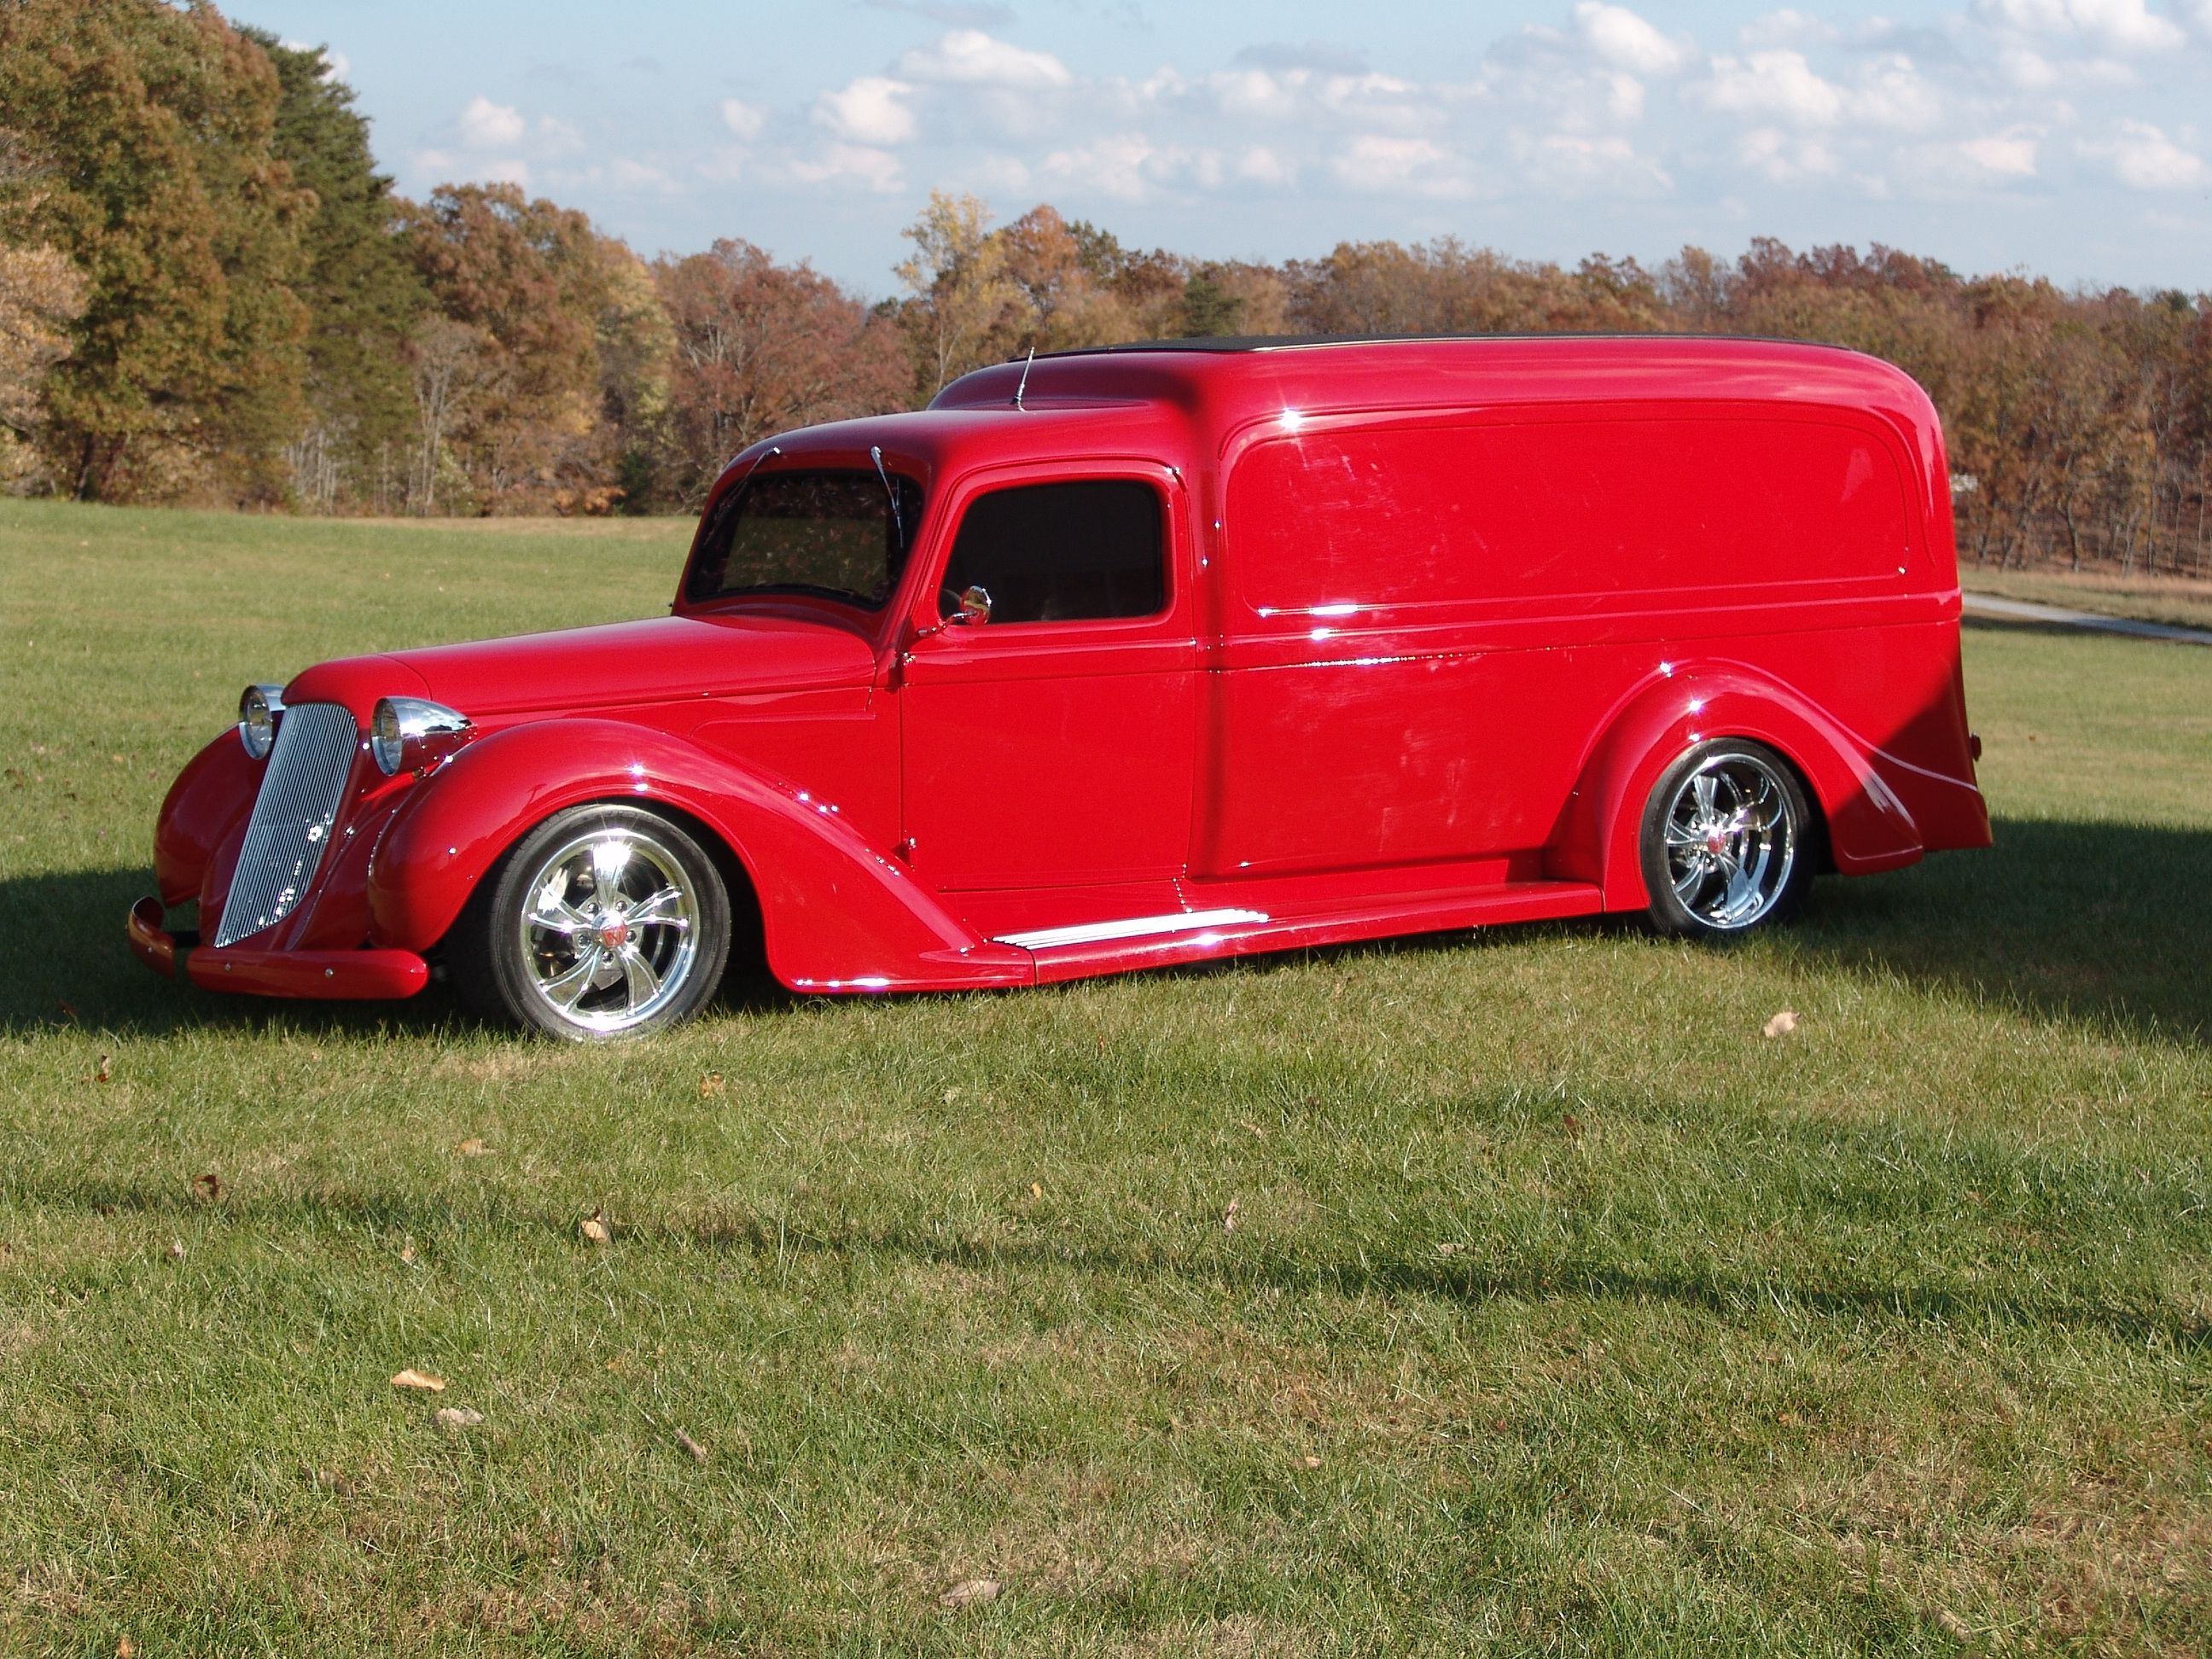 custom classic cars | ... Car wallpapers1936 Dodge panel truck ...